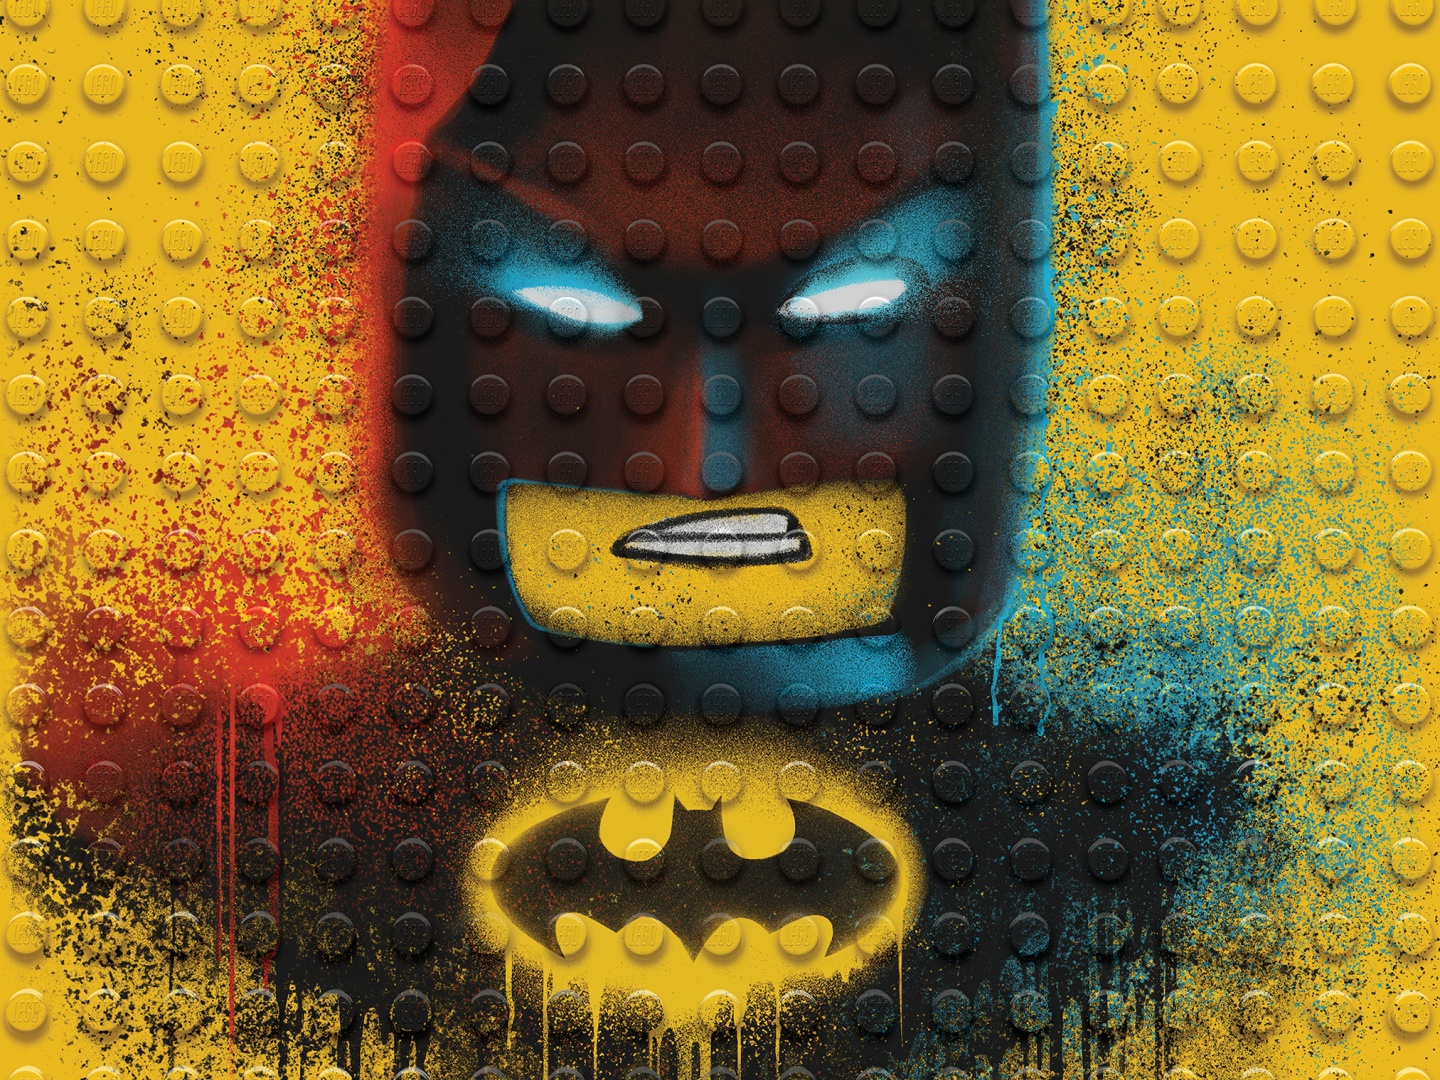 Image for The LEGO Batman Movie - Graffiti Wild Postings | Batman